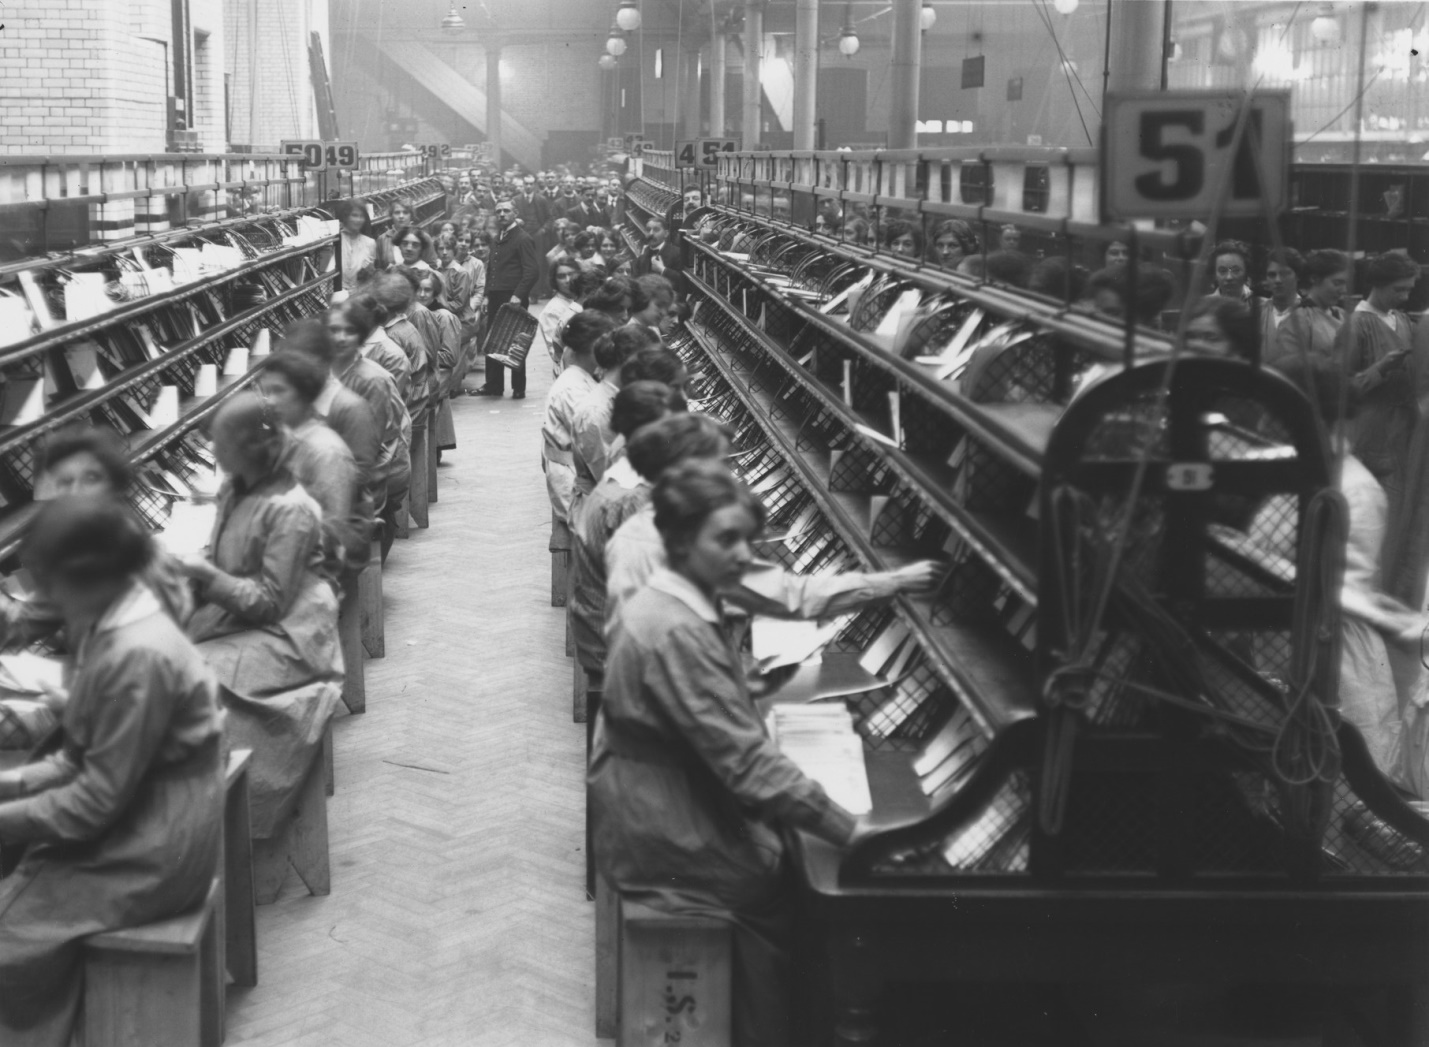 An image dozens of women working in the Post office to keep the United States of America functioning during WW1.